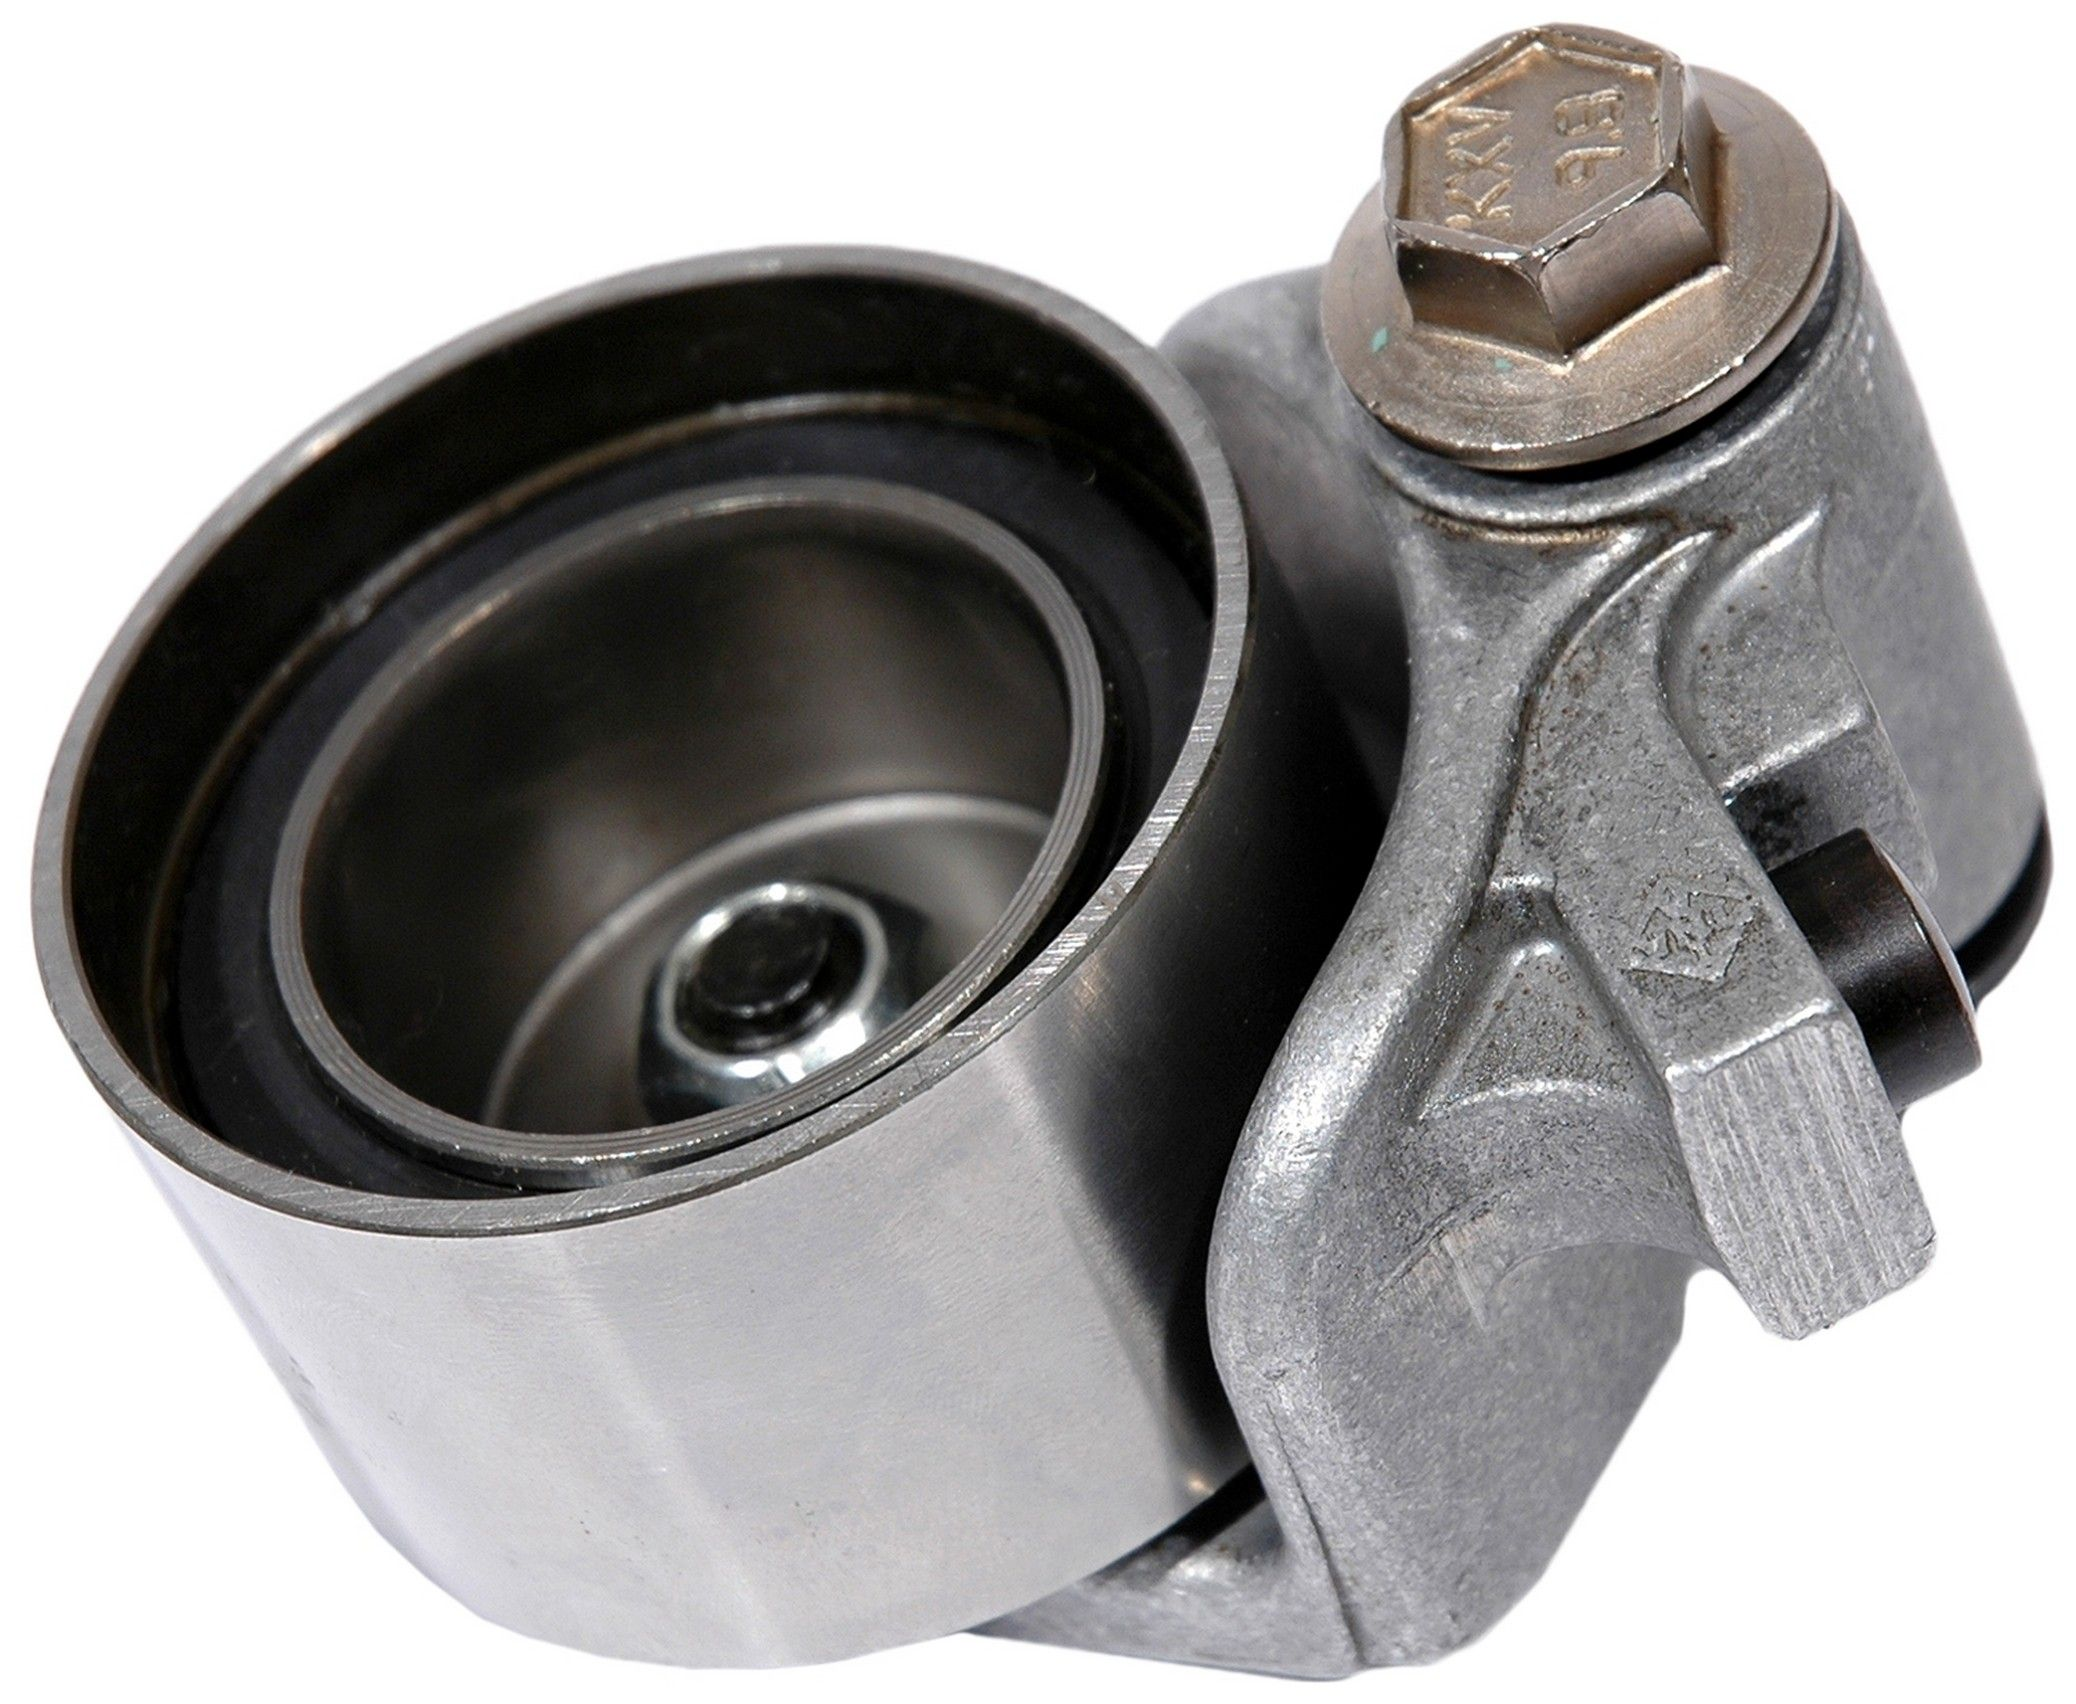 Chrysler Concorde Engine Timing Belt Tensioner Pulley Replacement Tool 1994 6 Cyl 35l Gates T41084 Does Not Include Cam Hyd Assy